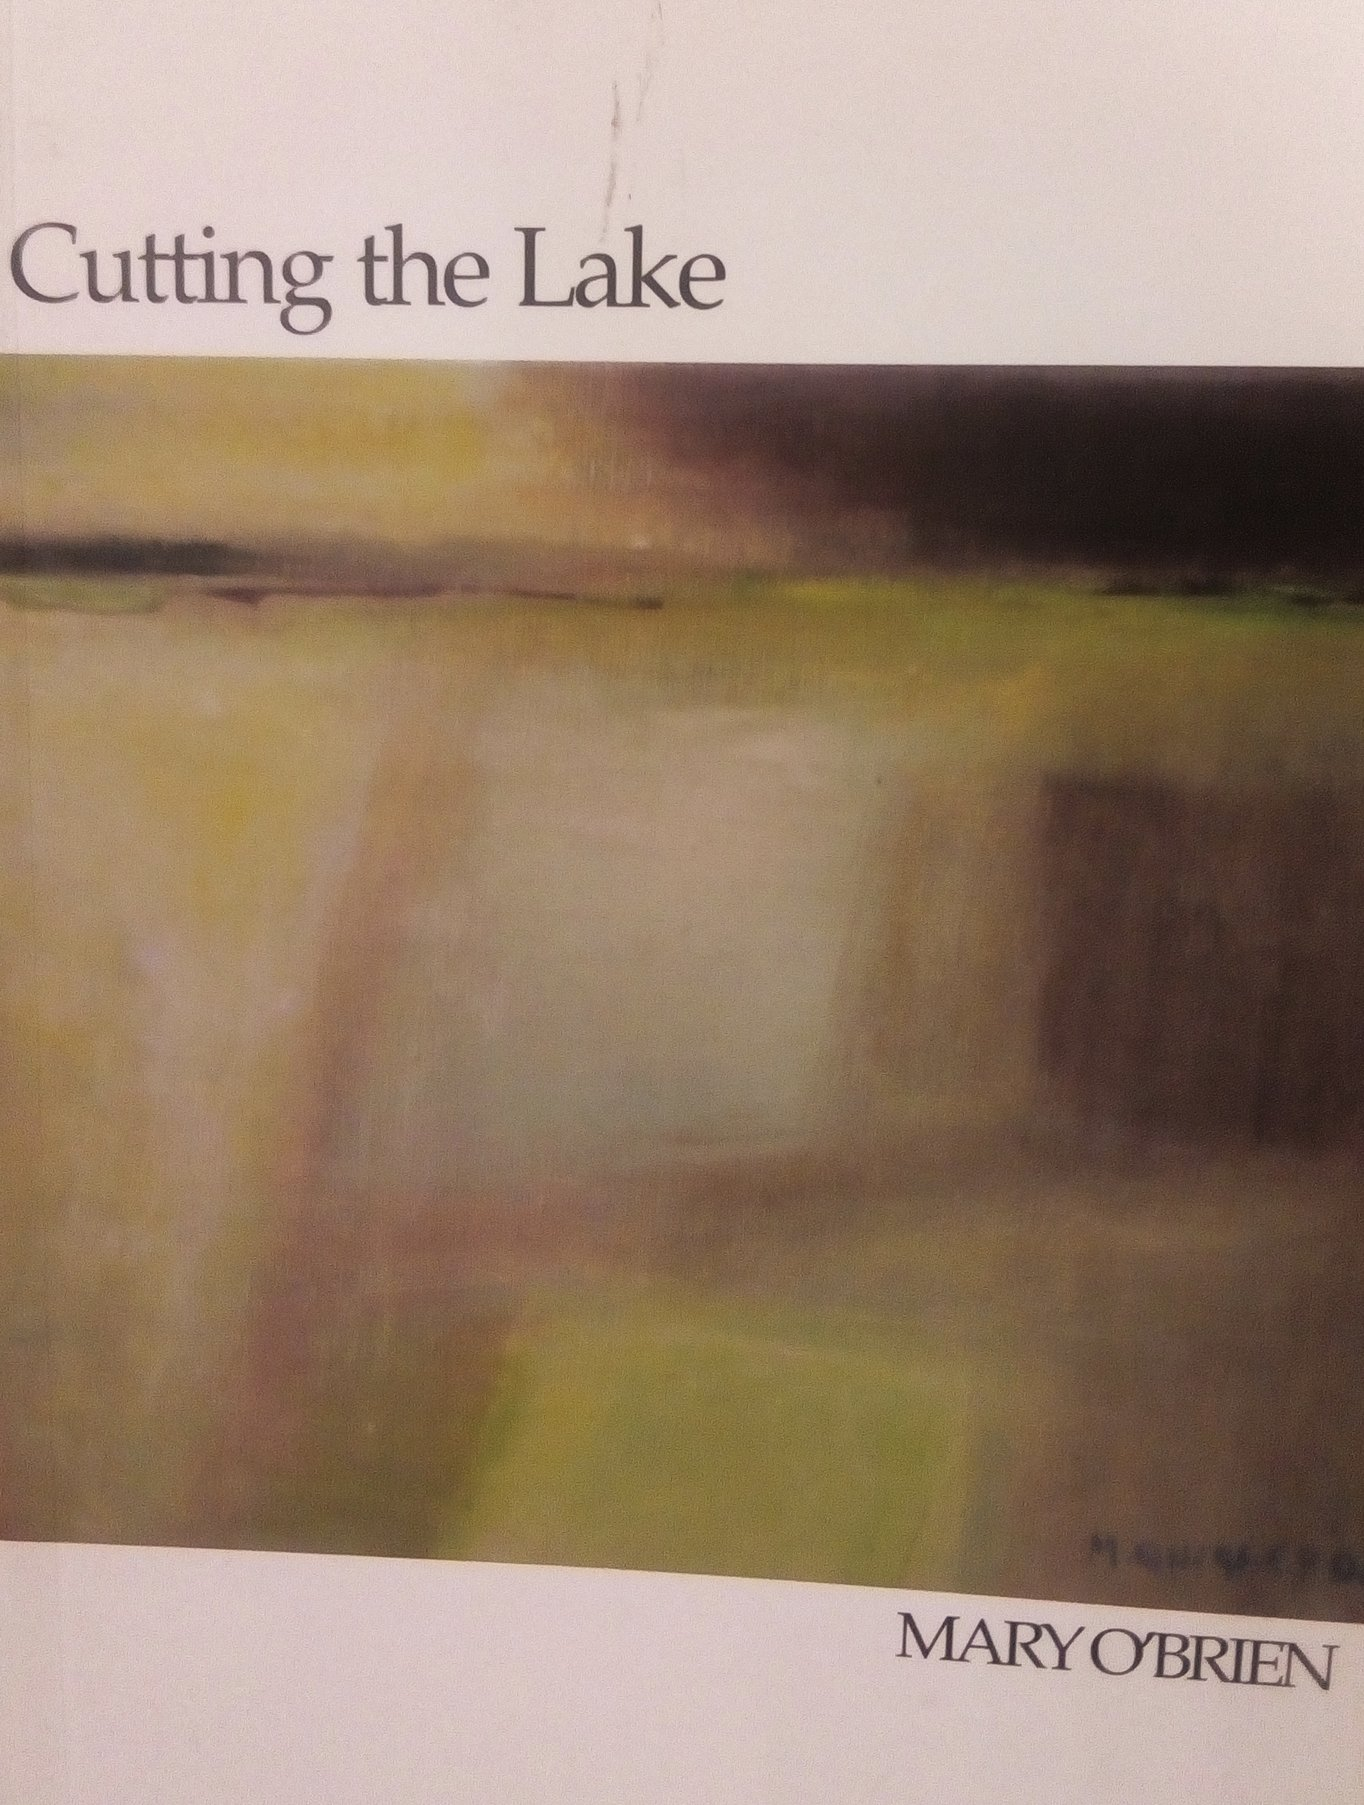 Cutting the Lake by Mary O'Brien